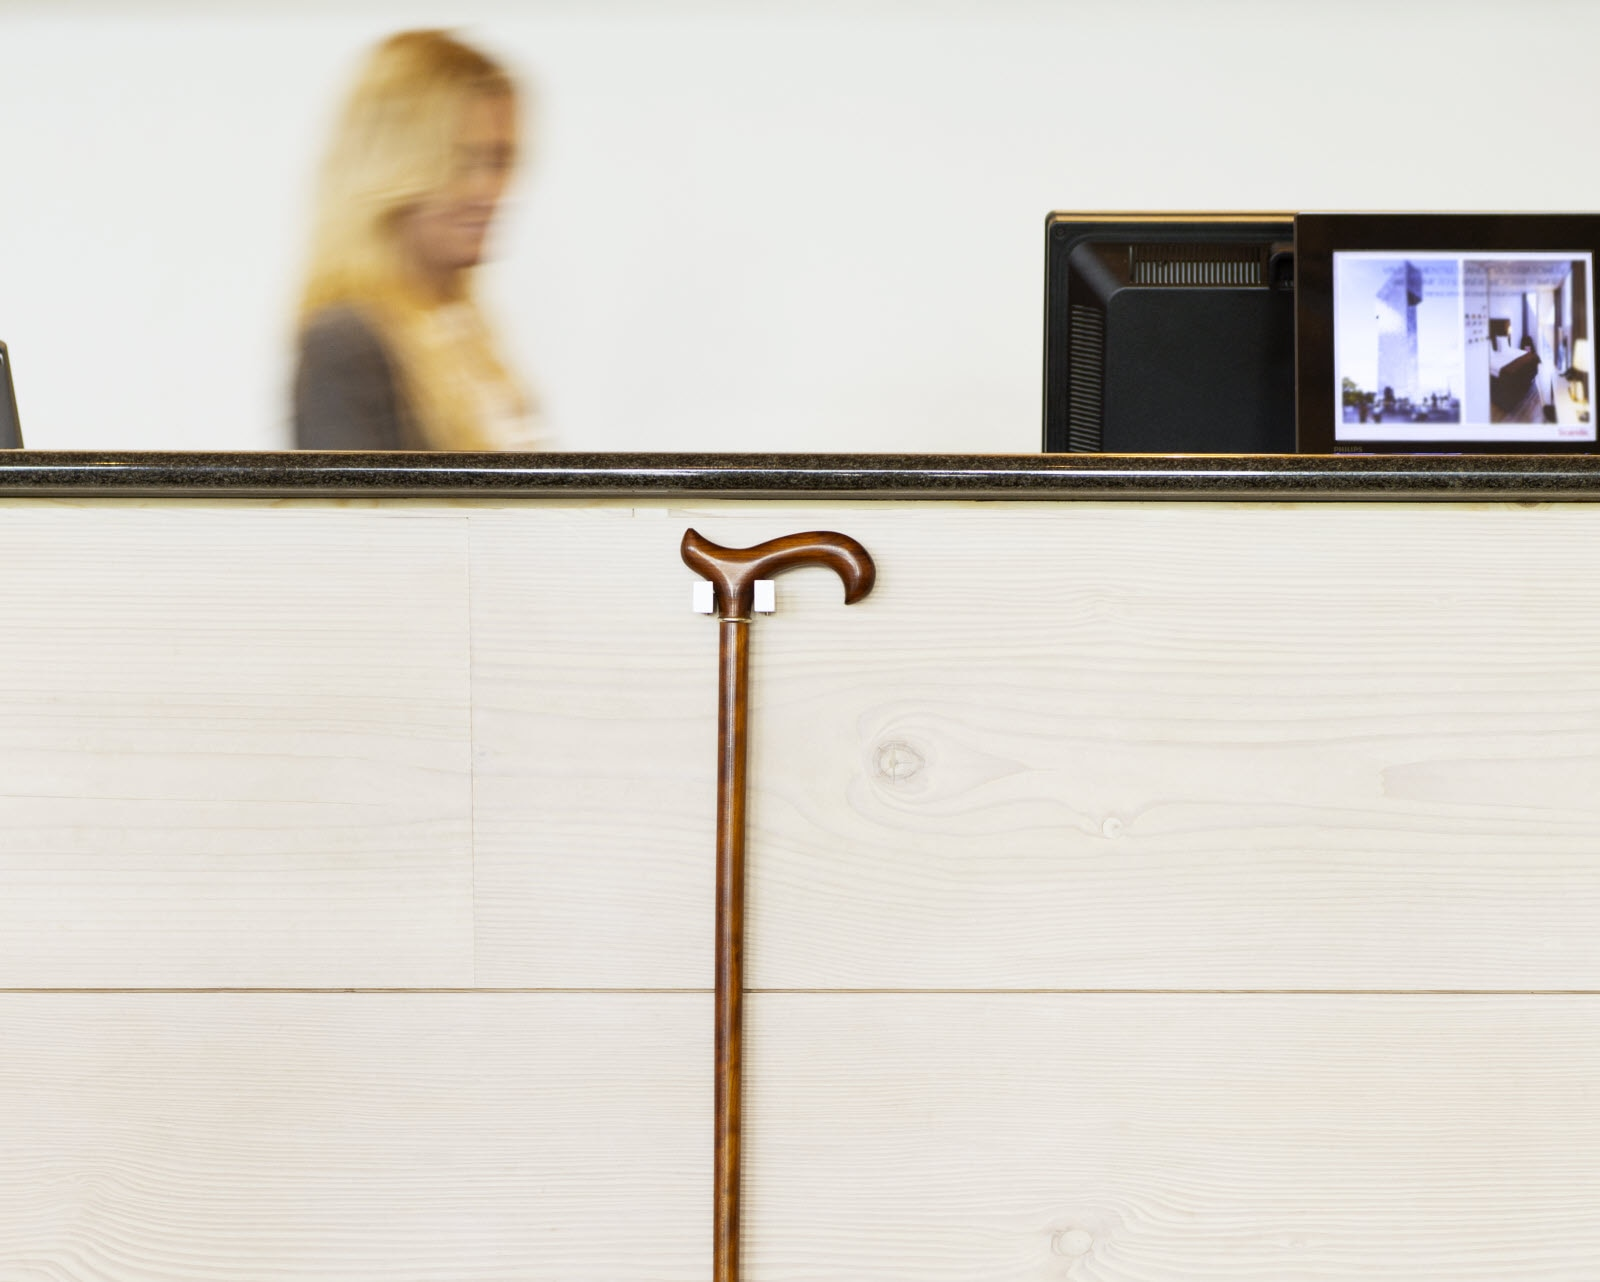 Scandic, accessibility, availability, accessibility standard, front desk, stick holder, cane holder